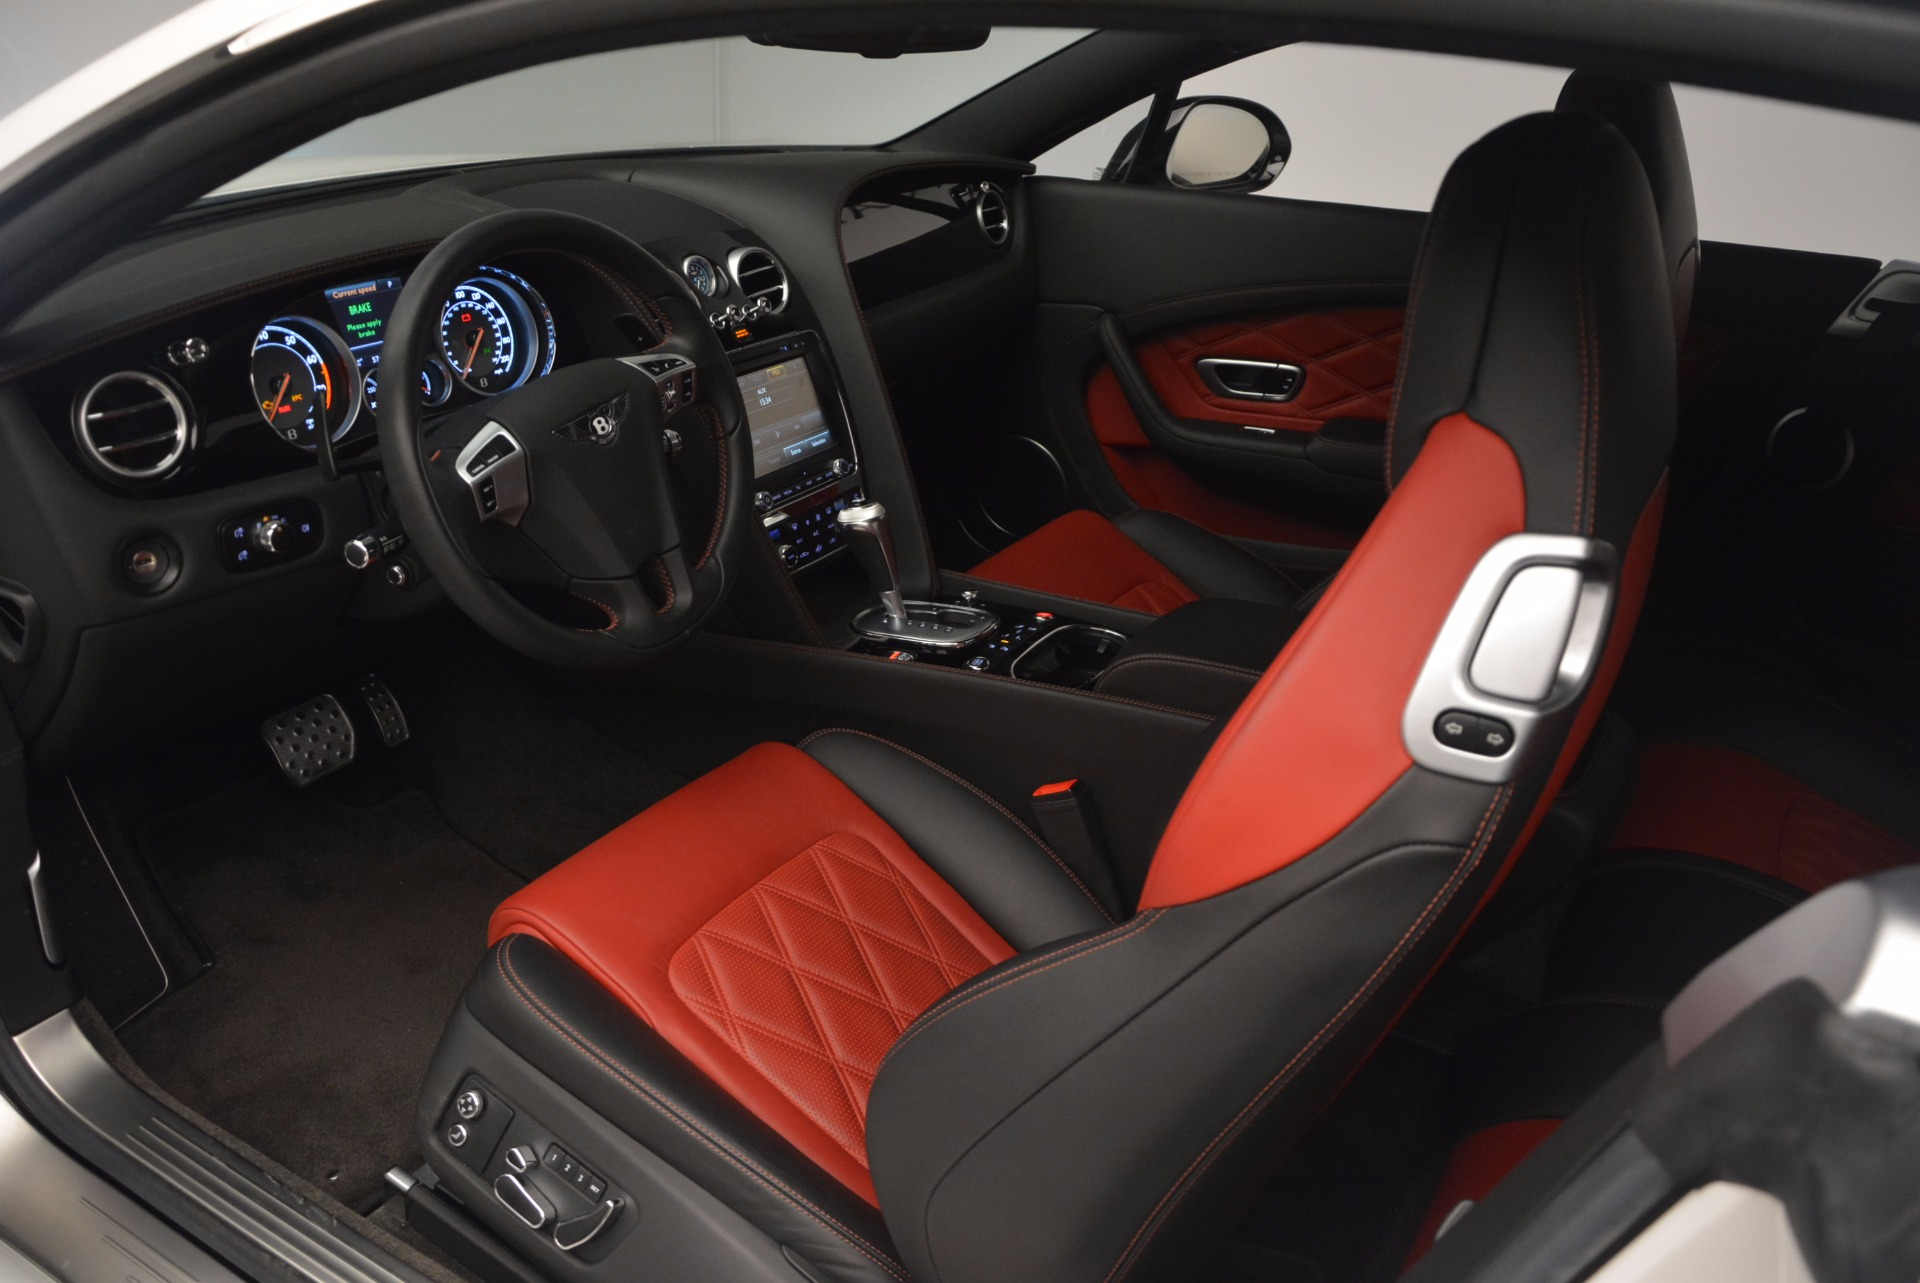 Used 2014 Bentley Continental GT V8 S For Sale In Westport, CT 806_p27